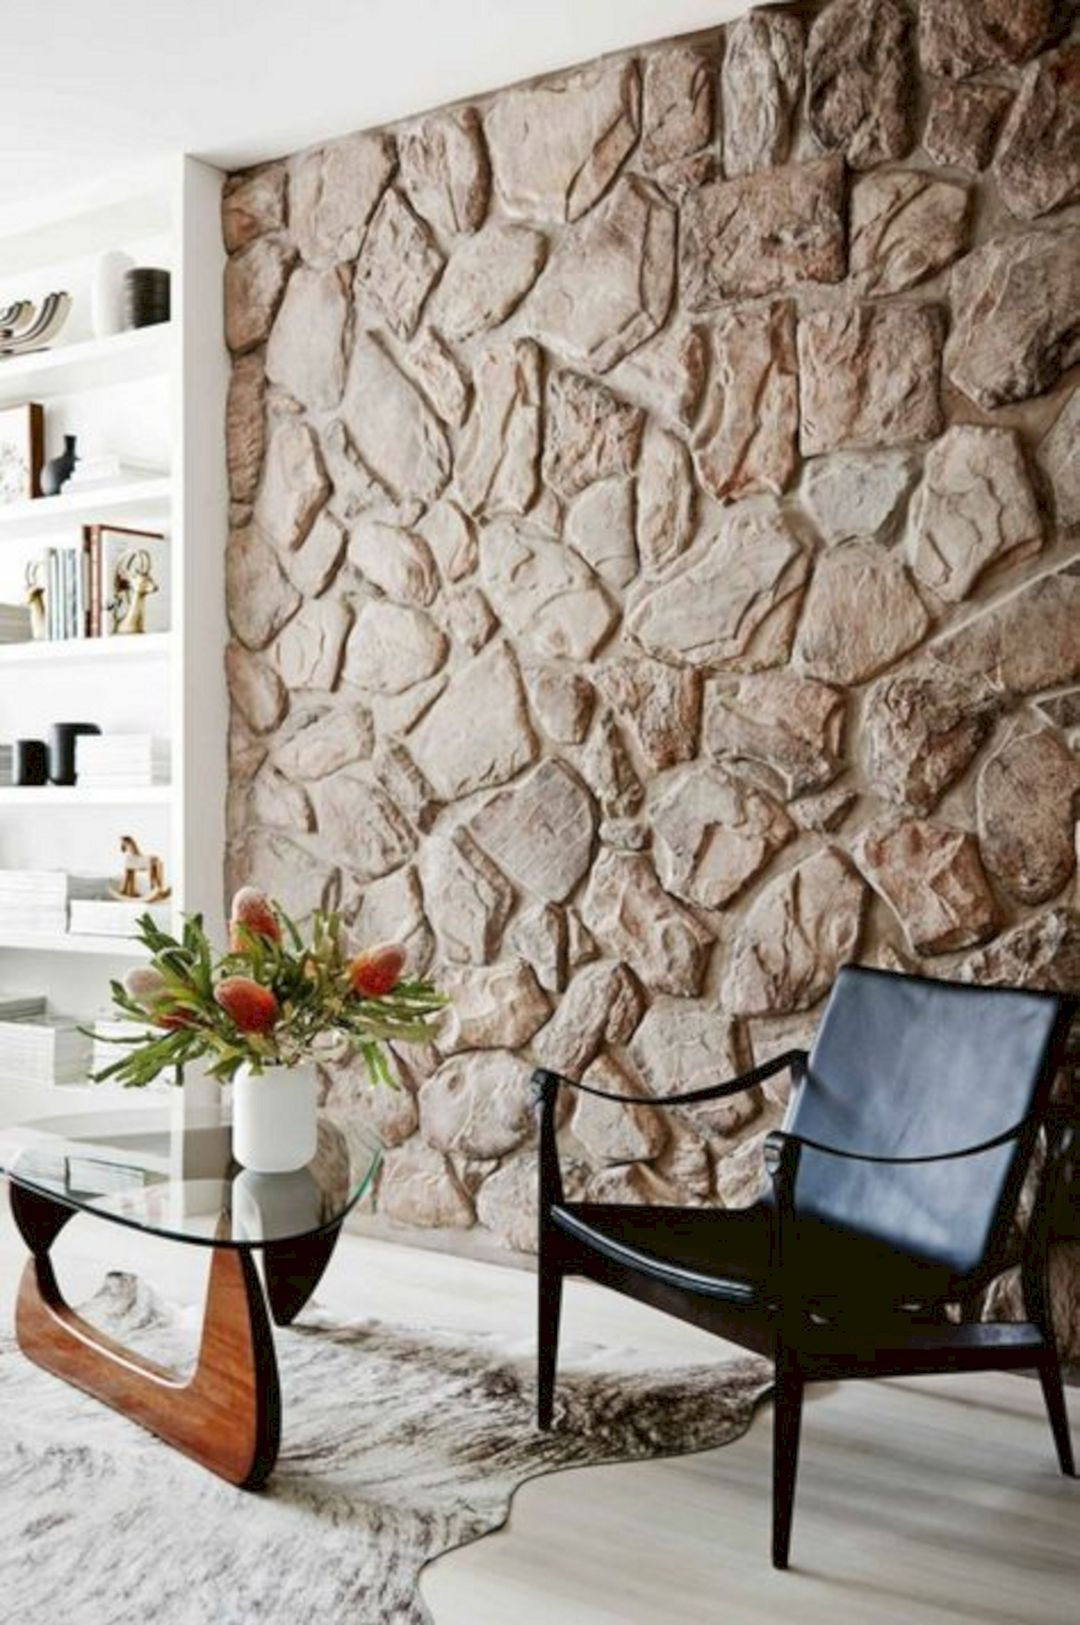 Living Room Wall Stone Design In 2020 Stone Walls Interior Stone Wall Design Stone Wall Living Room